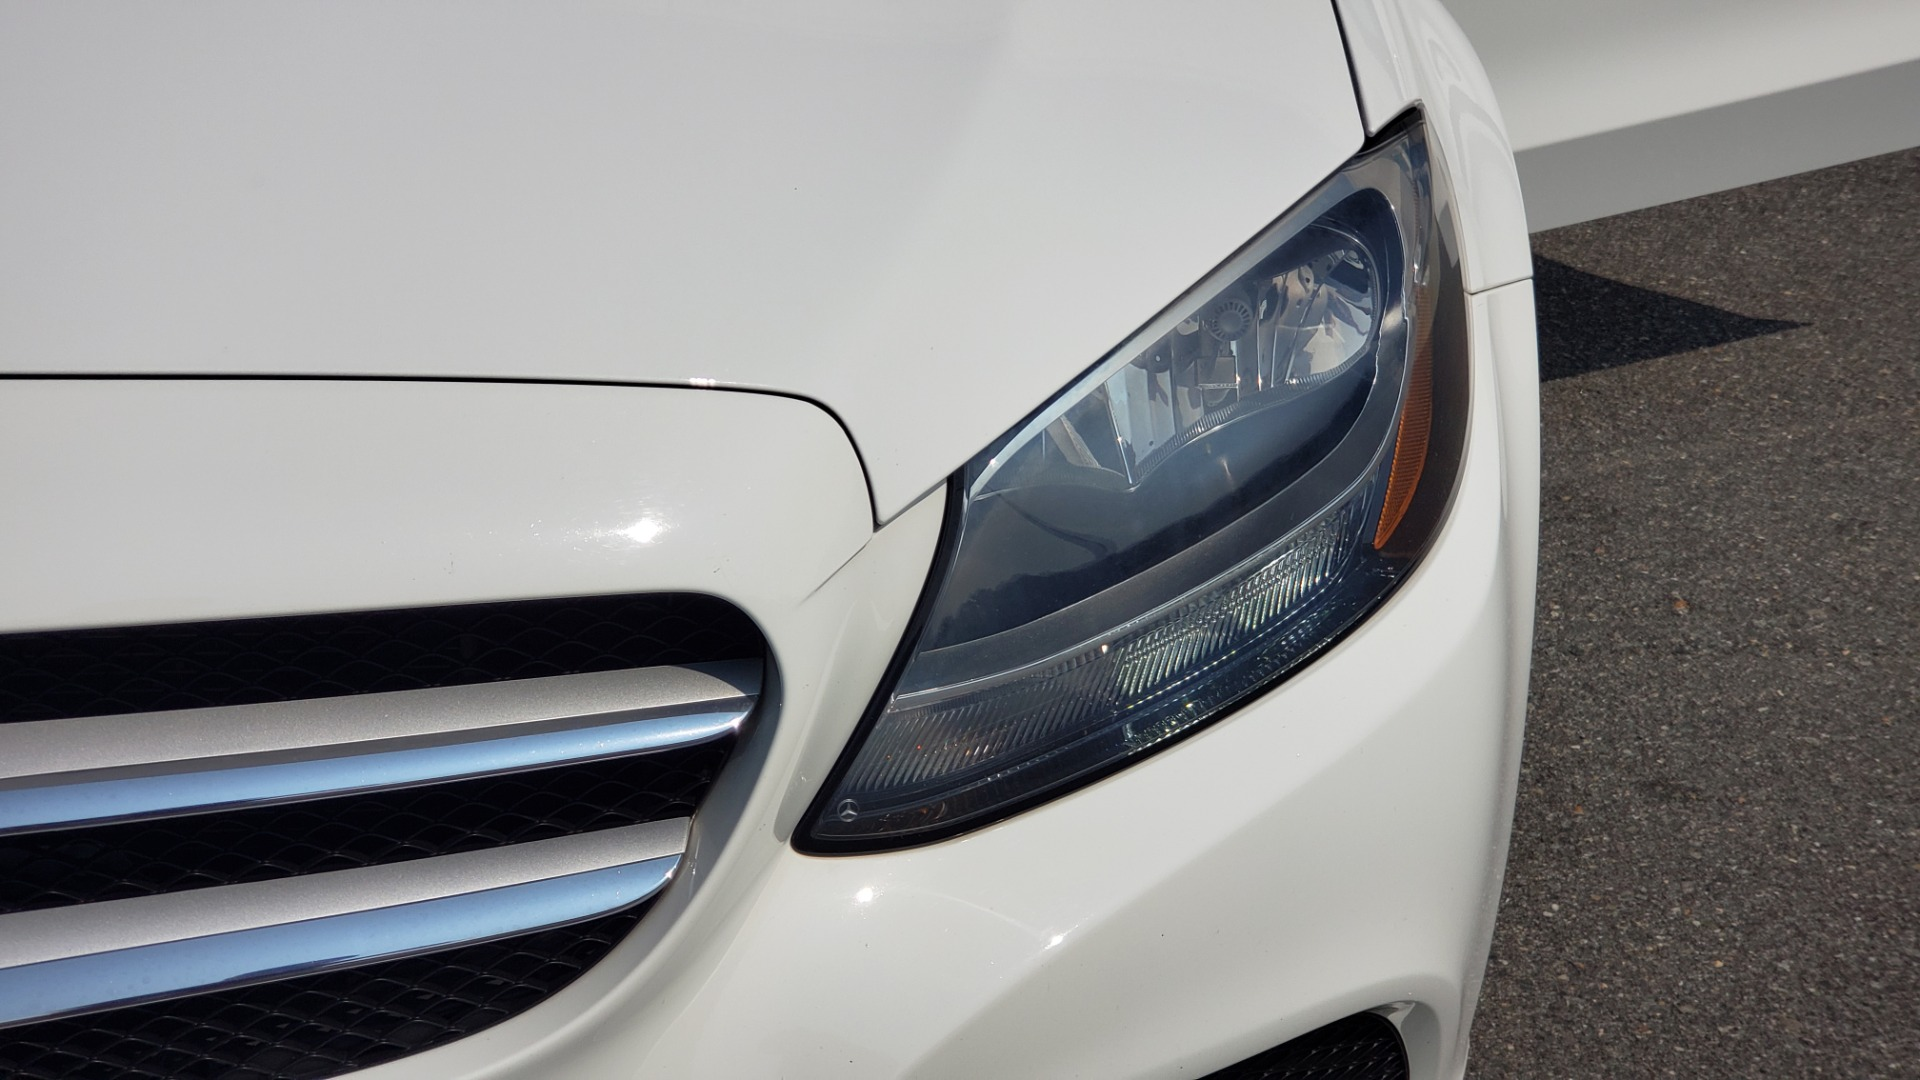 Used 2018 Mercedes-Benz C-CLASS C 300 PREMIUM / KEYLESS-GO / APPLE / PANO-ROOF / REARVIEW for sale $28,295 at Formula Imports in Charlotte NC 28227 23